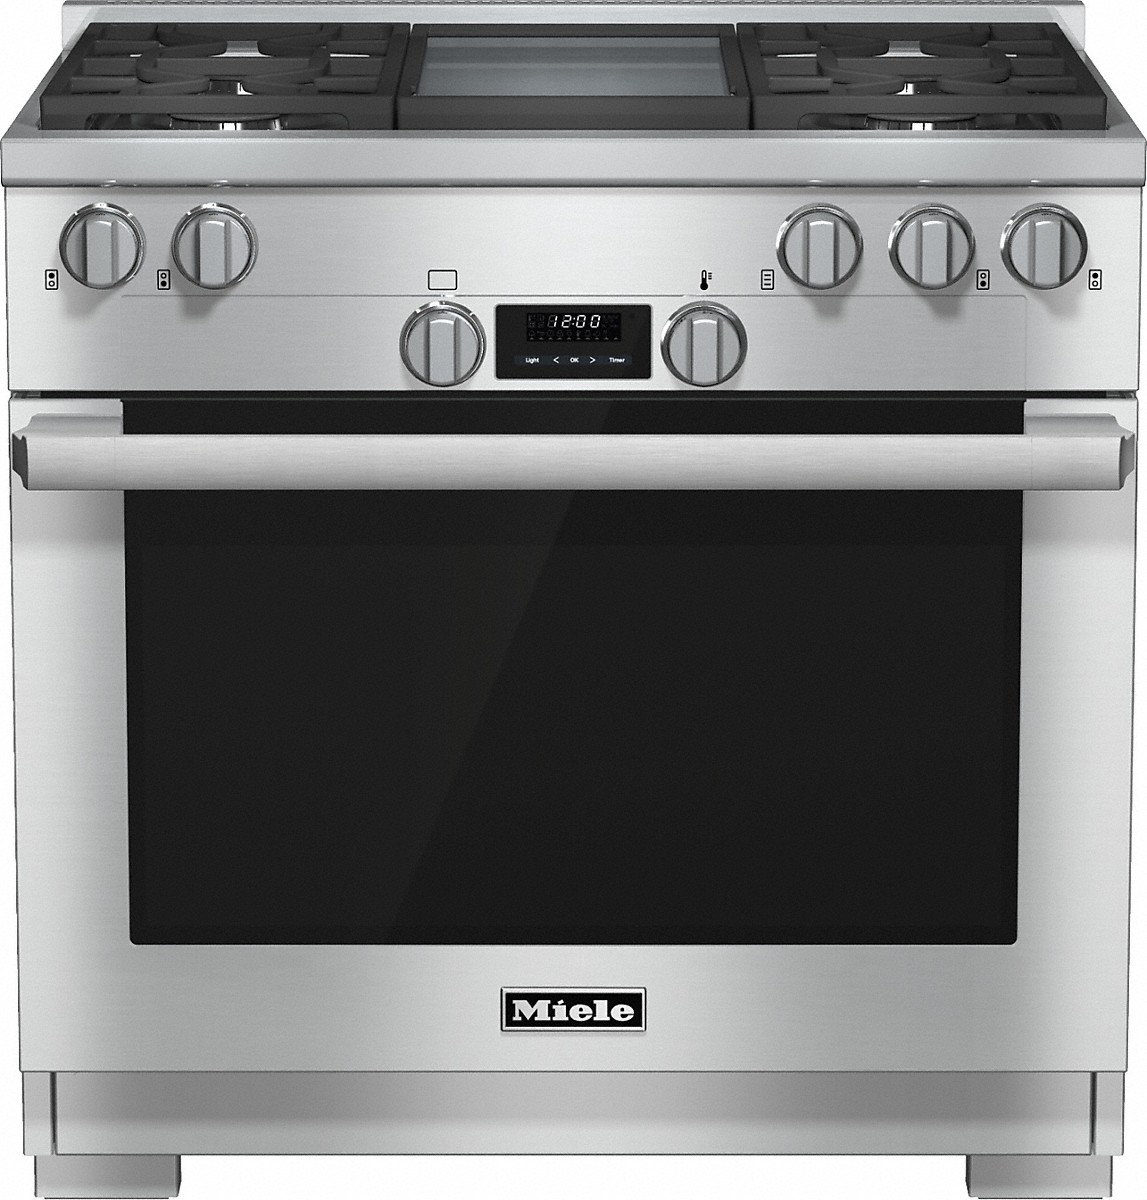 Miele 36 inch rangeAll Gas with DirectSelect, Twin convection fans and M Pro dual stacked burners